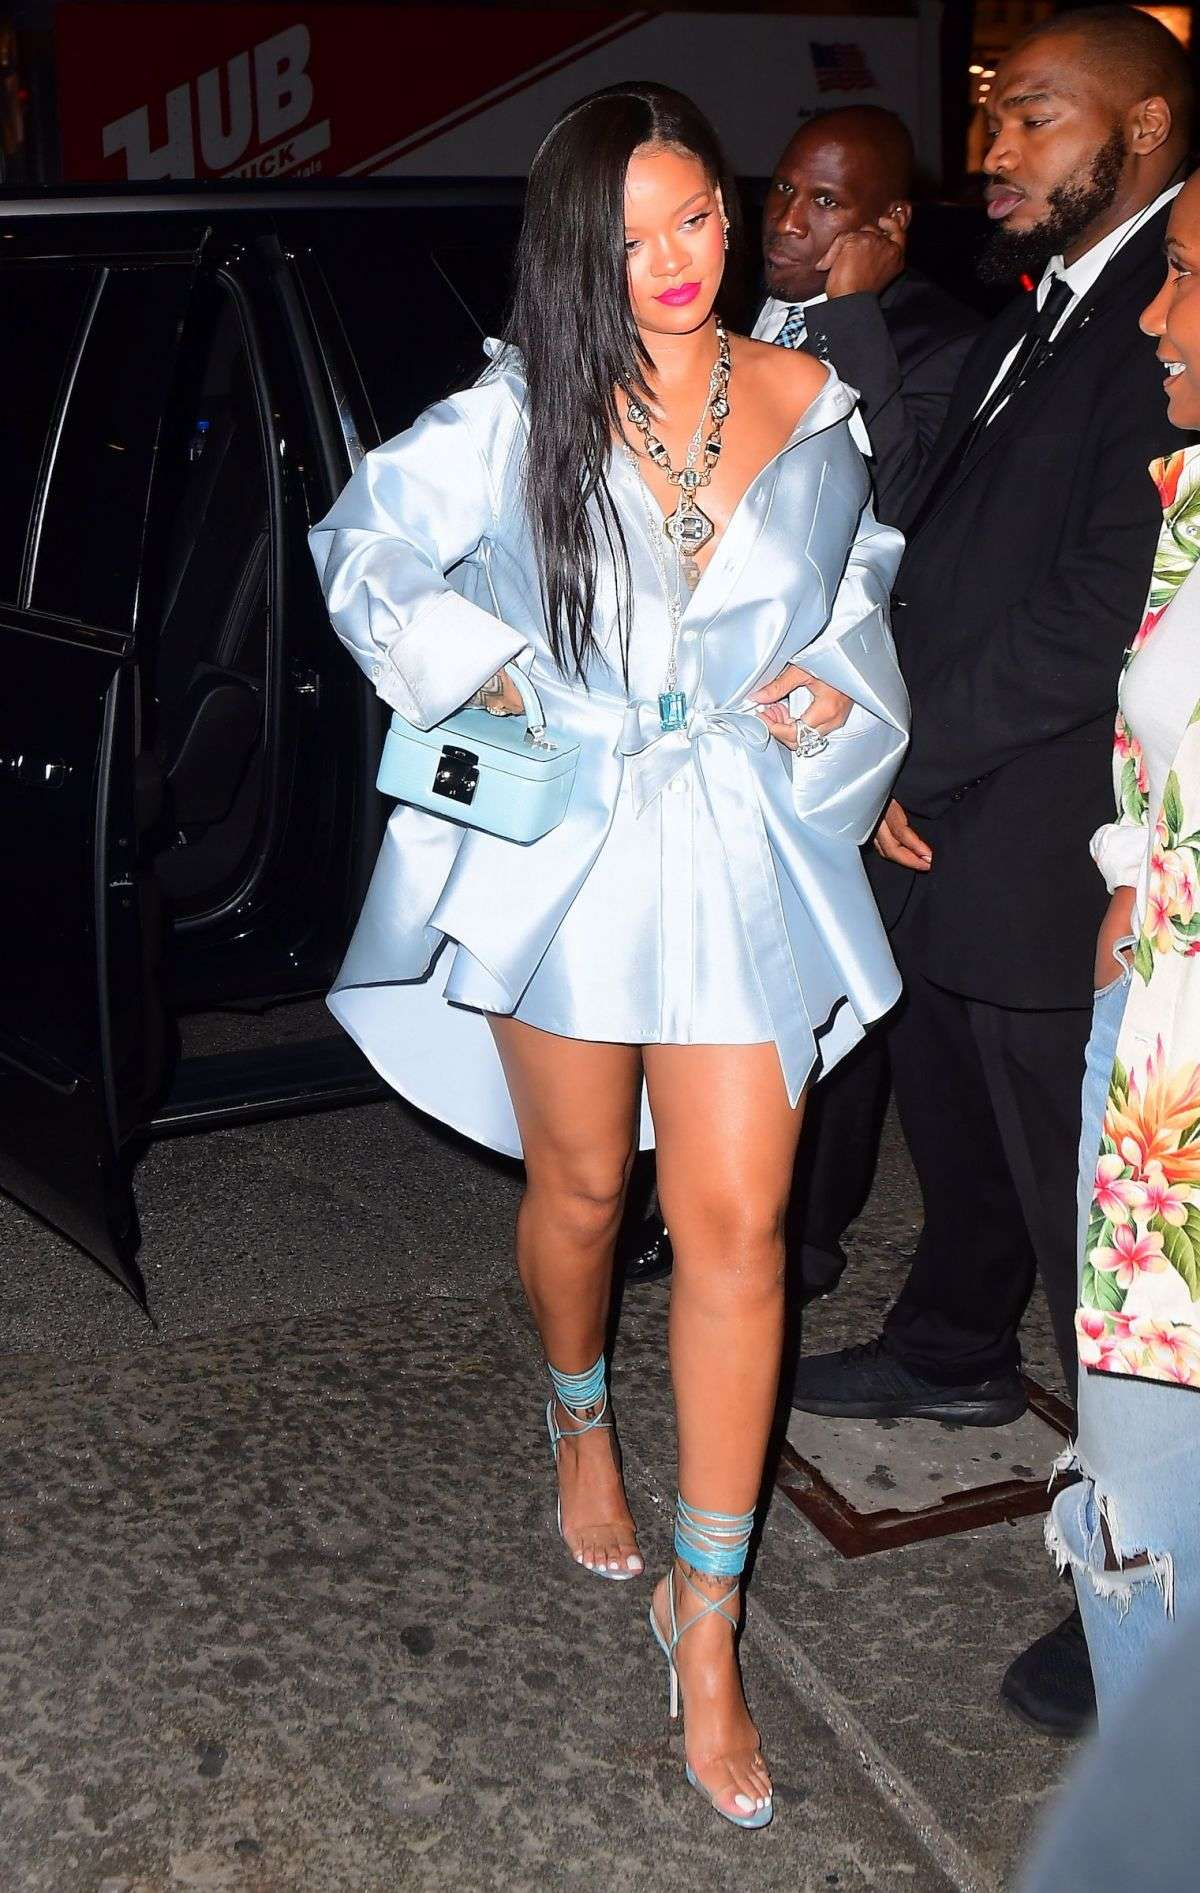 Rihanna wows in an array of stunning outfits when she is not entertaining her fans